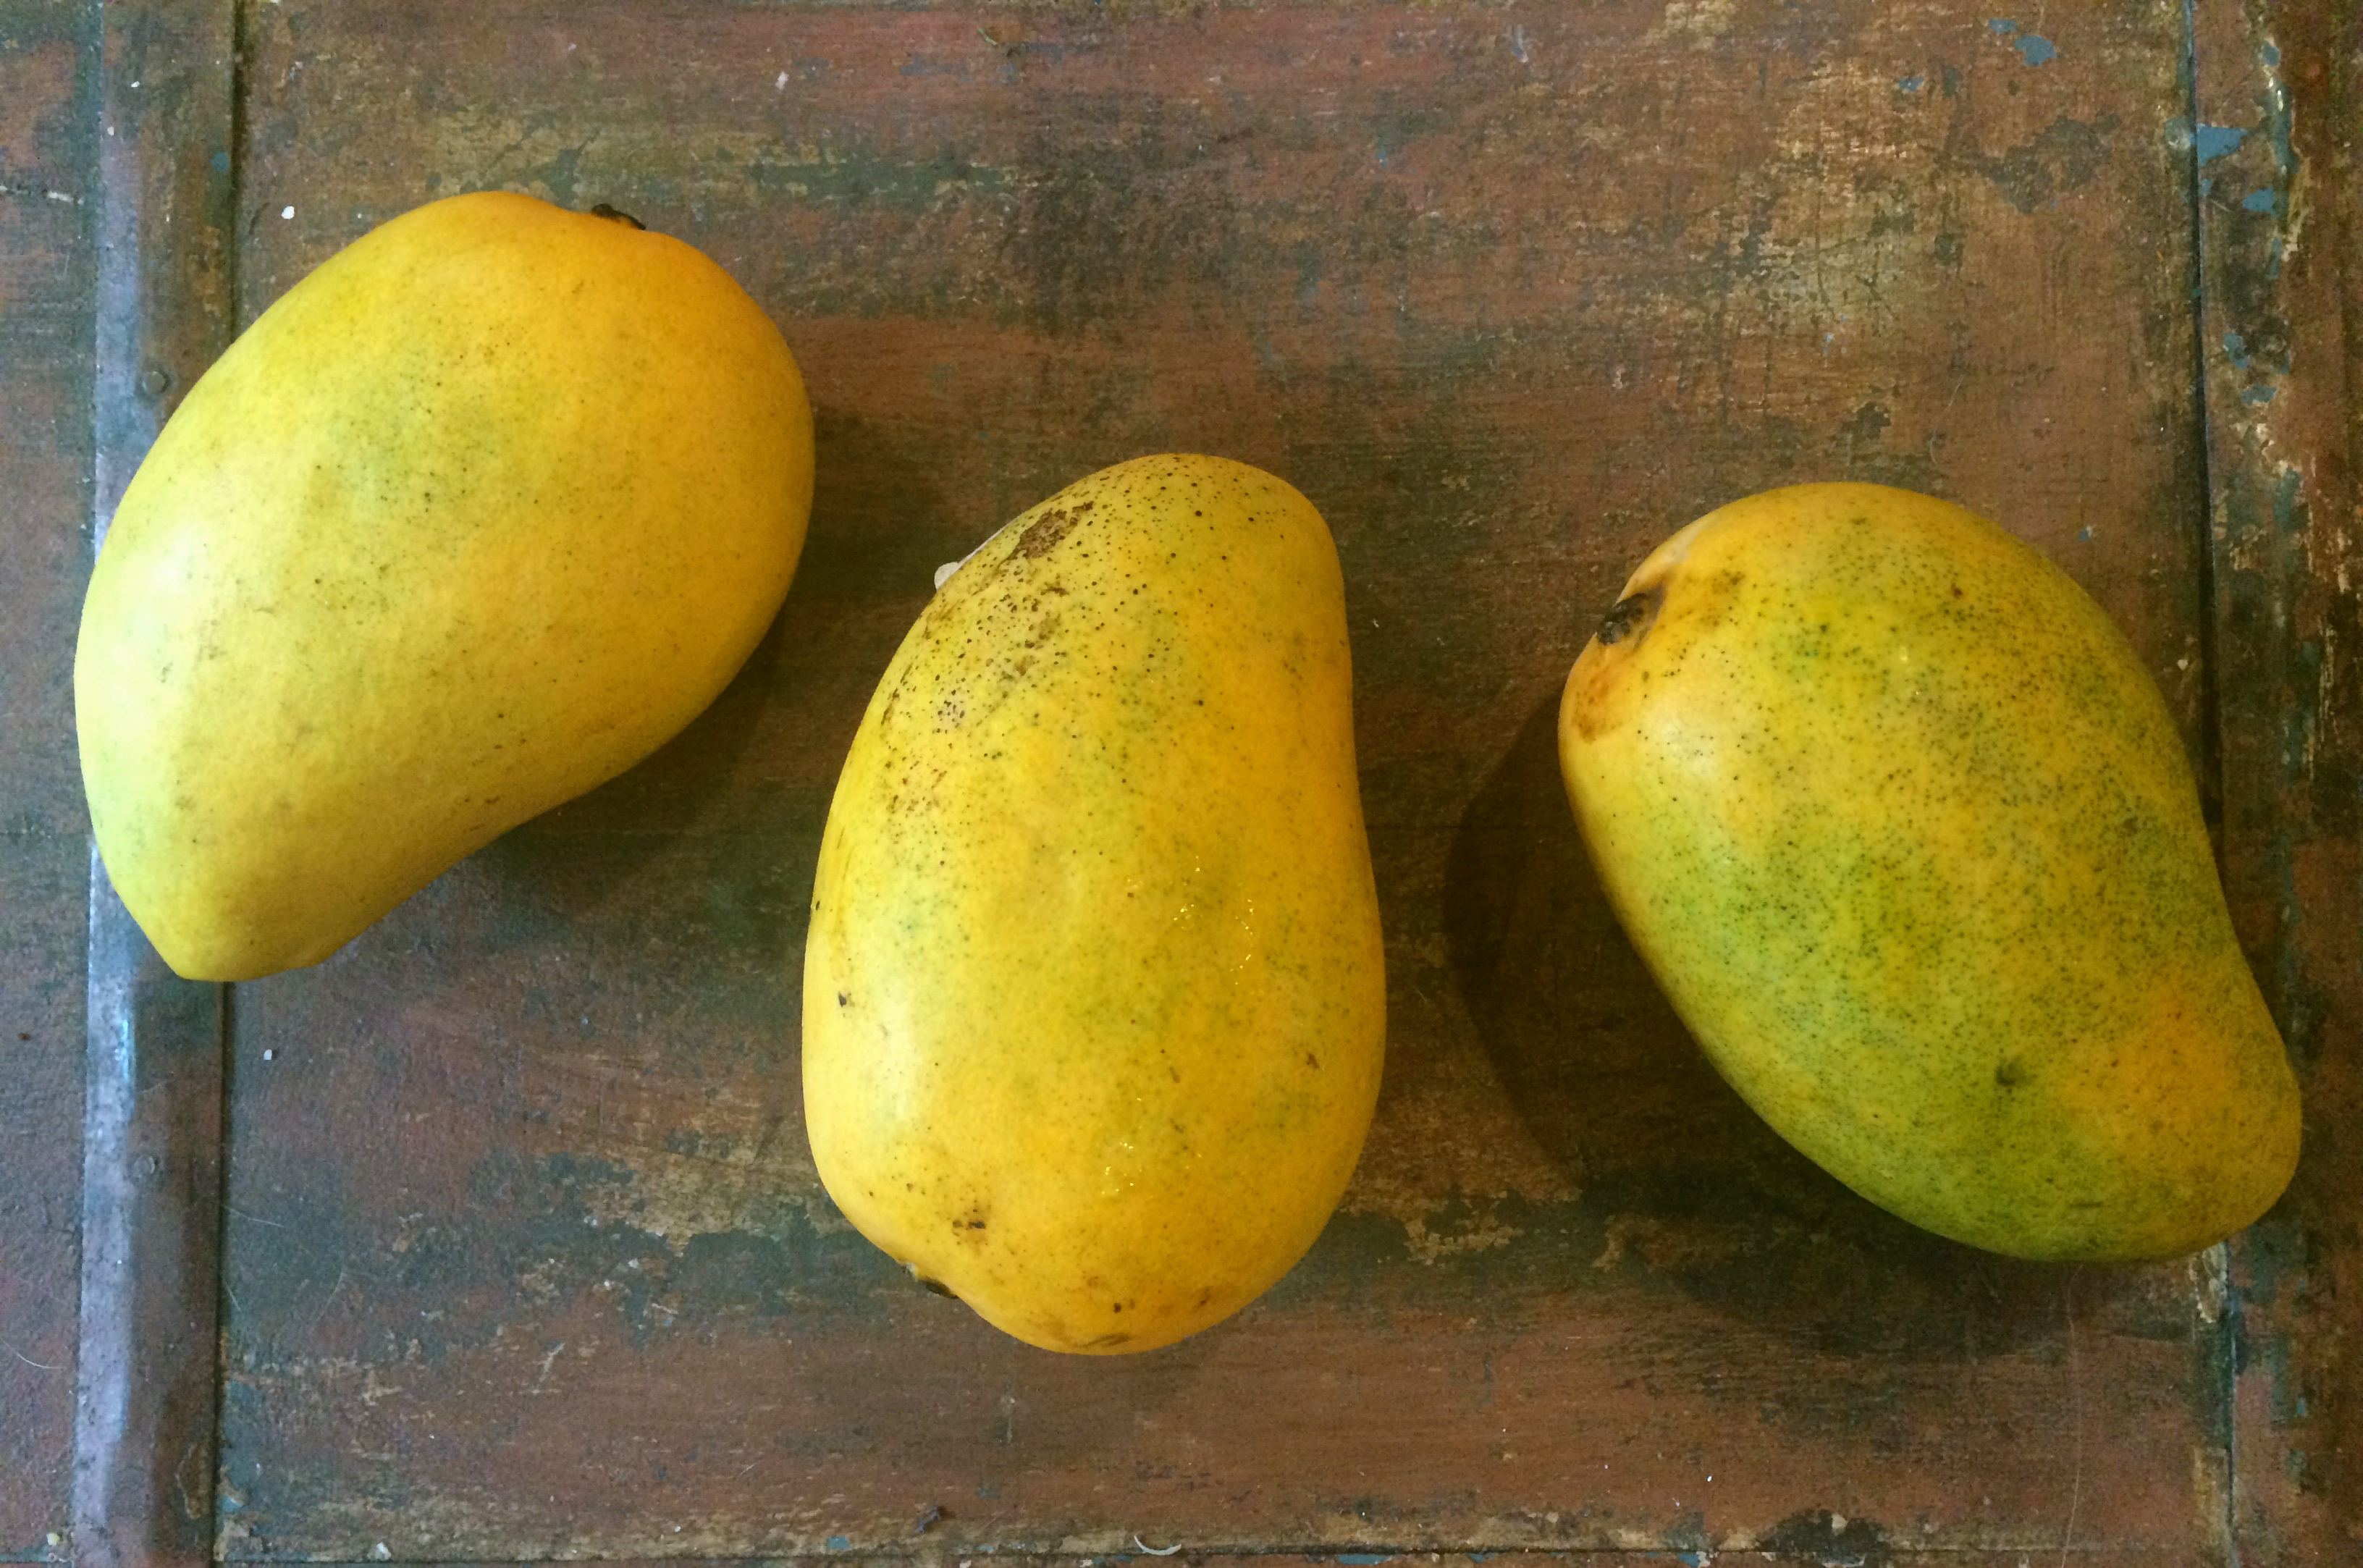 Tip: Don't Judge A Mango By The Color Of It's Skin! Look For Fresh Mangoes  That Yield Slightly To Pressure– That Means They're Ready To Eat,  Regardless Of